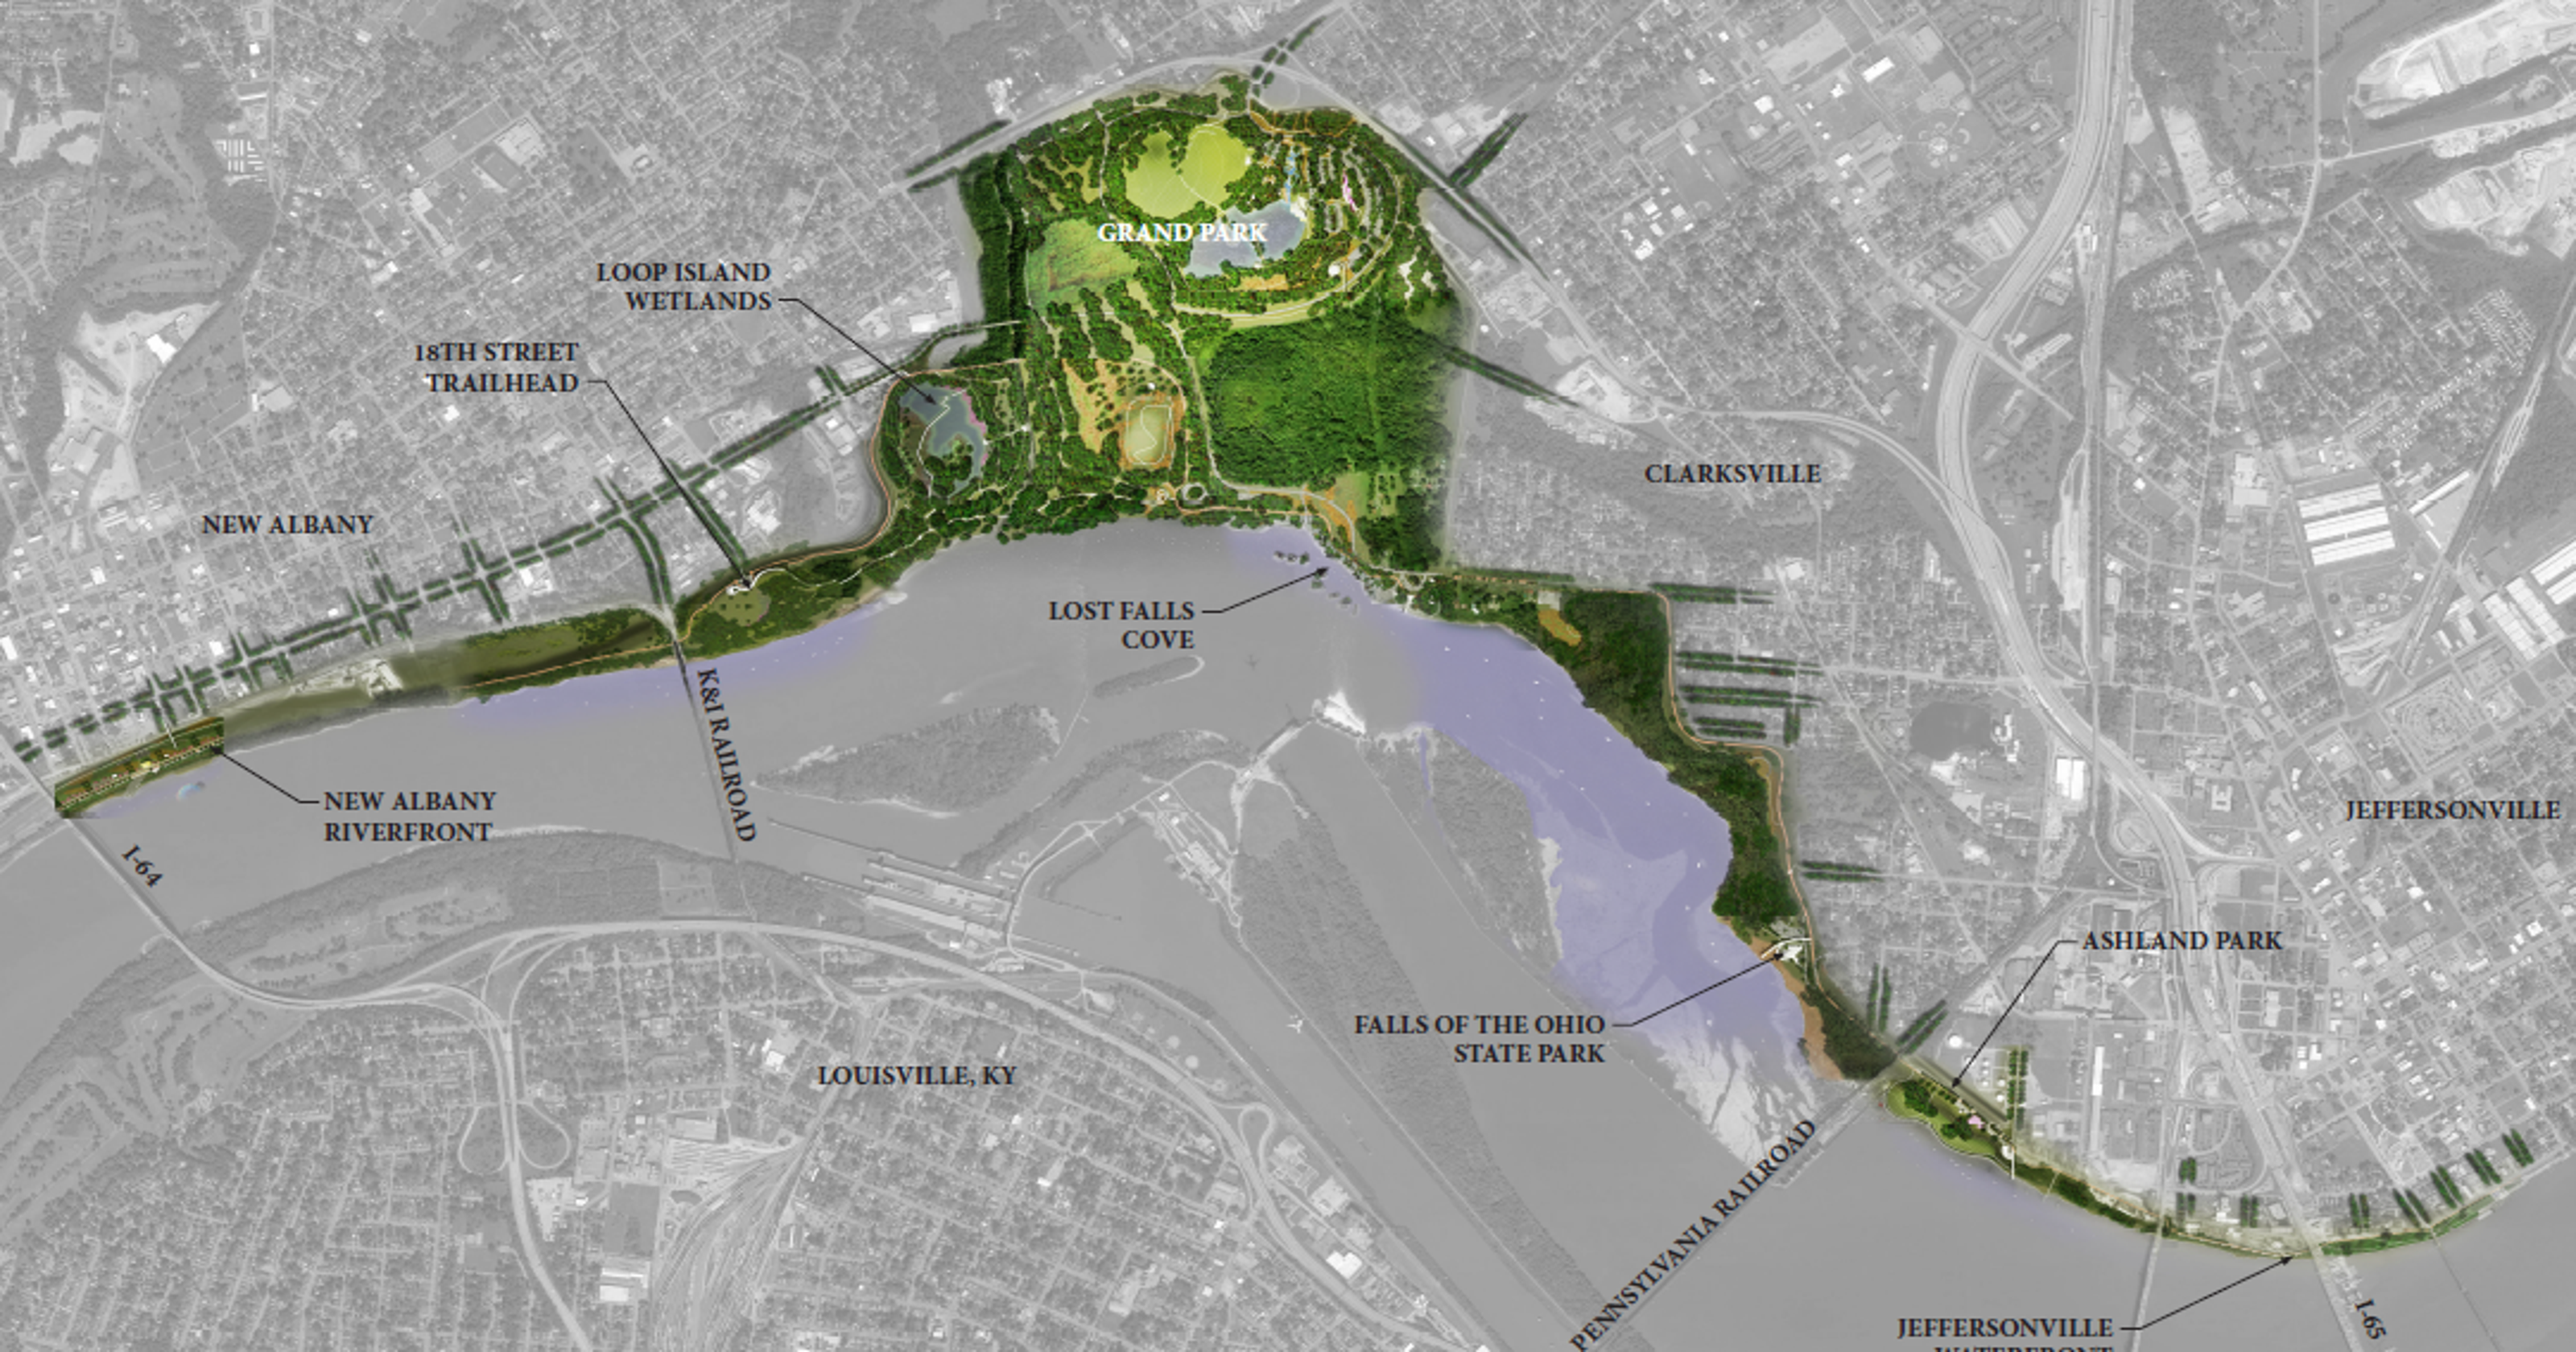 Jeffersonville Ohio Map.New Push Starts To Turn Ohio River Greenway Into Major Liner Park